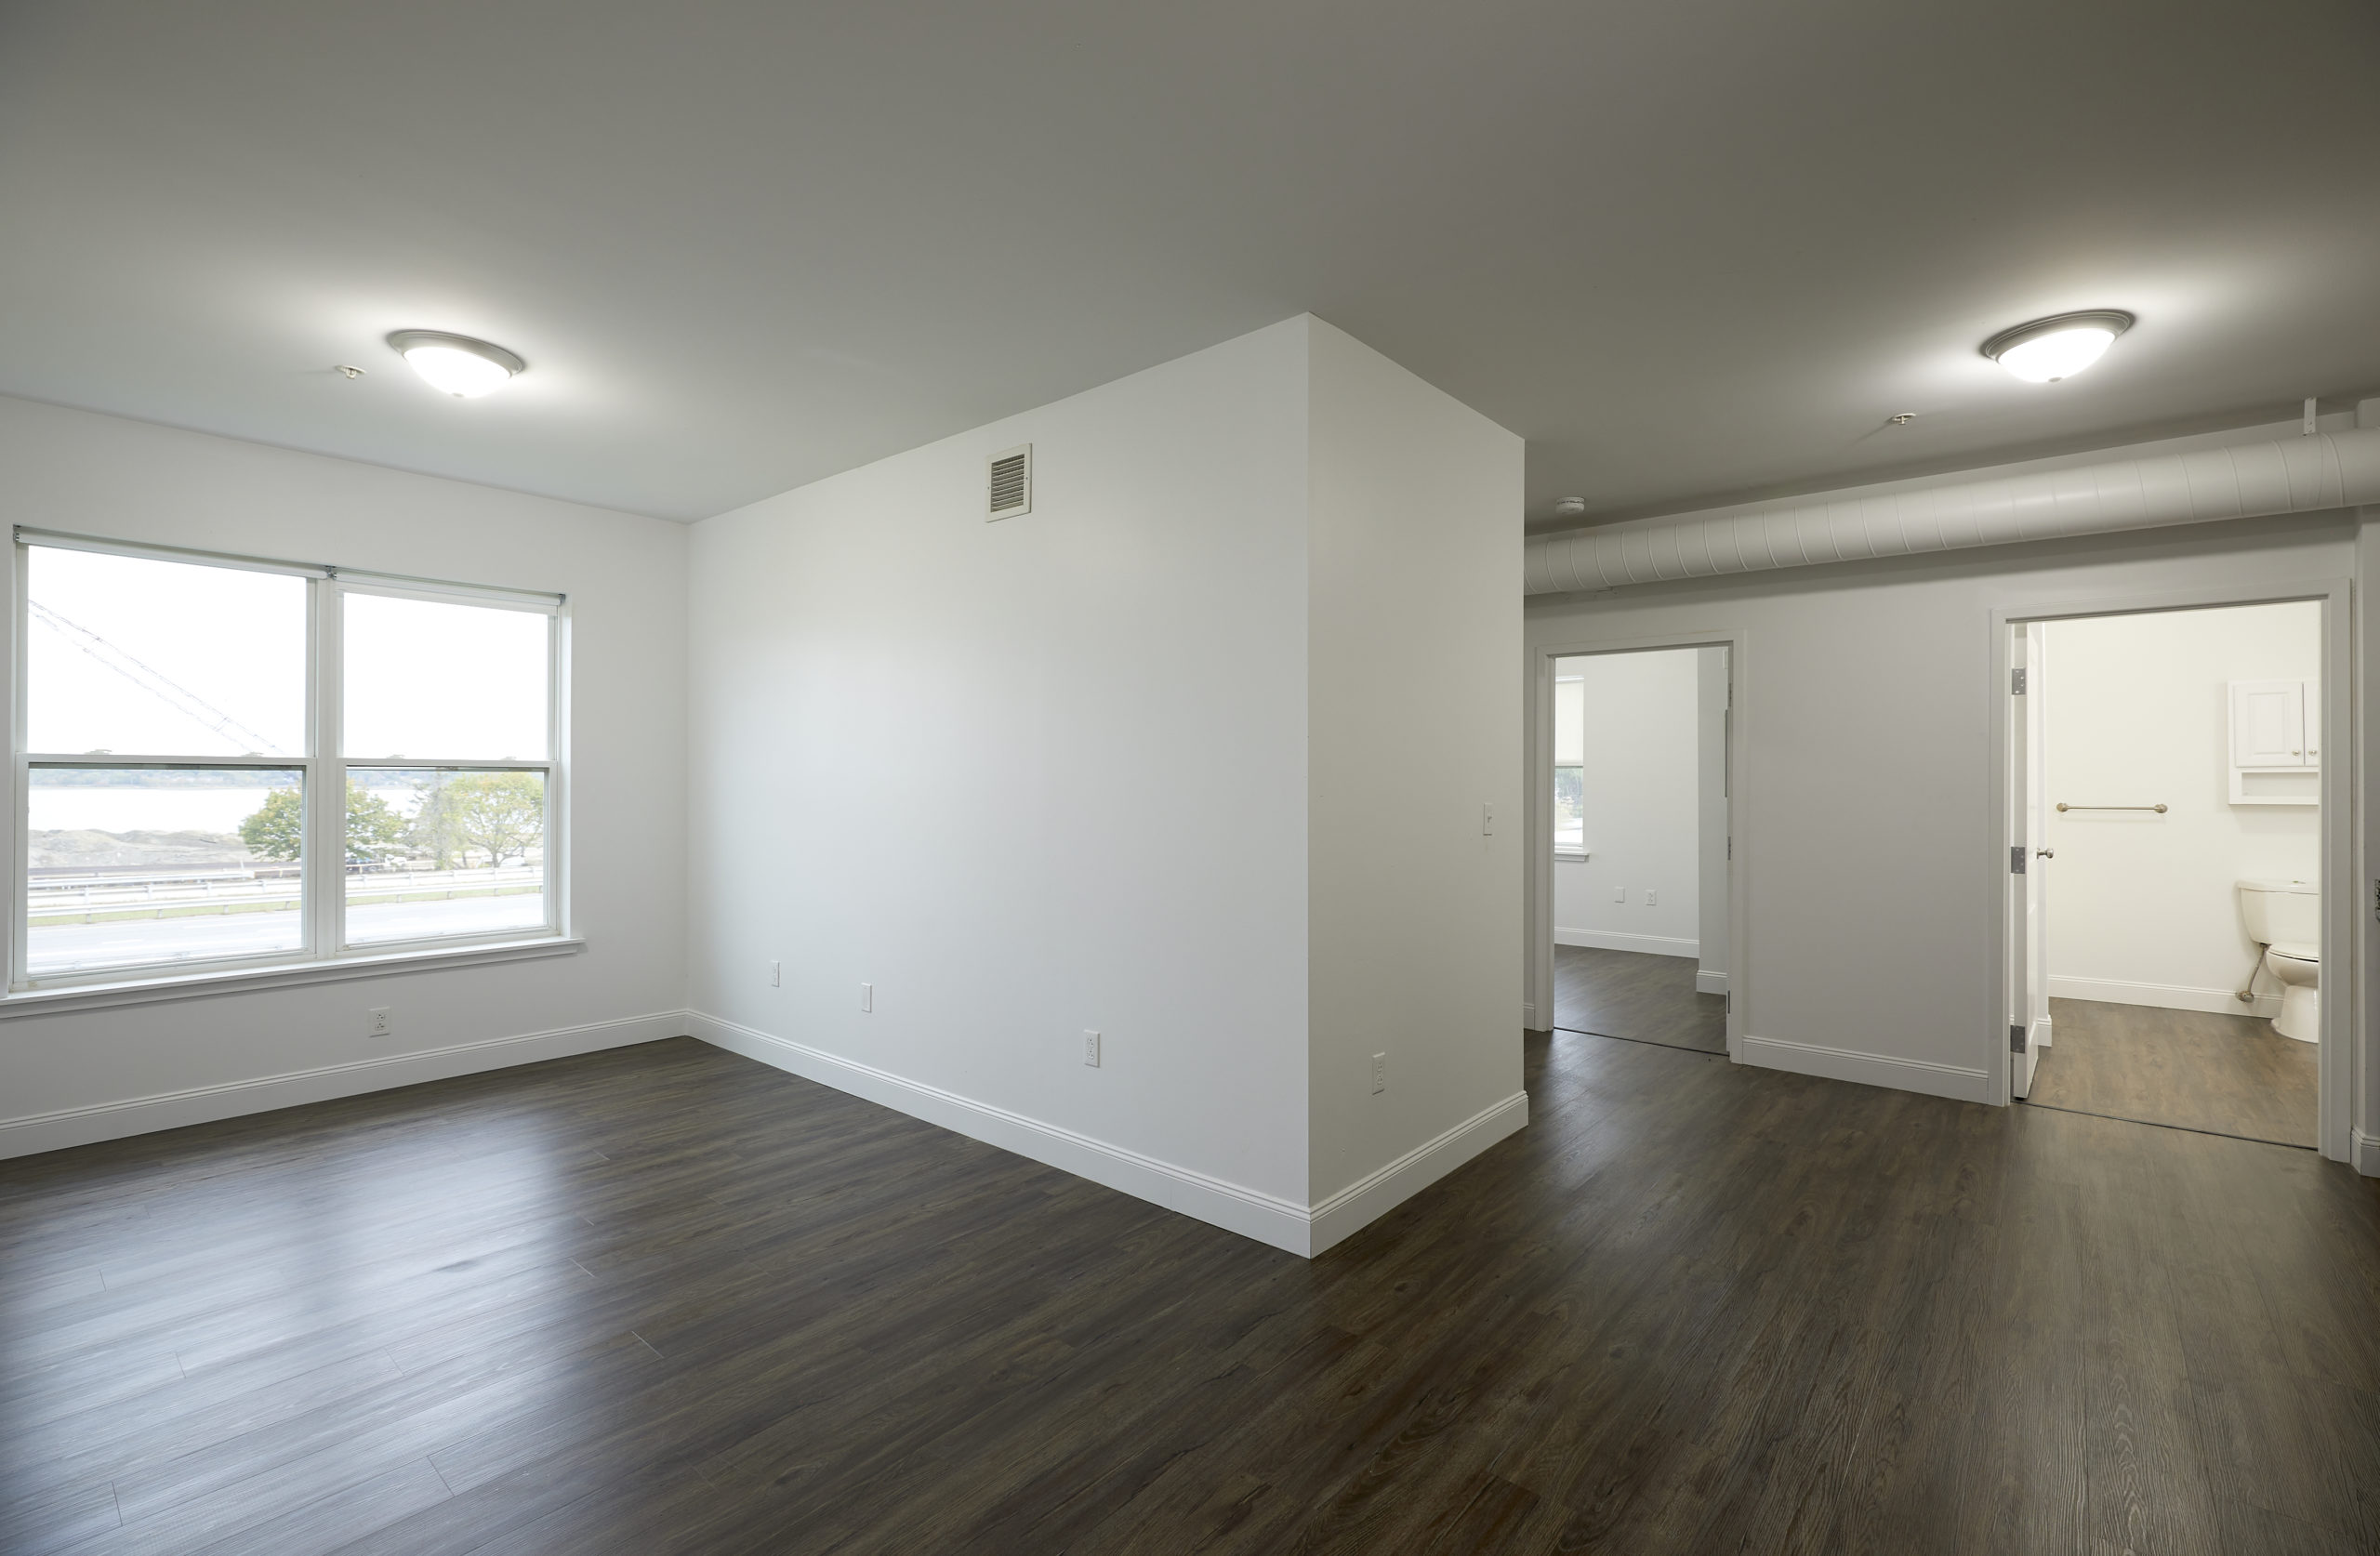 132 Marginal Way – The Linden – Apartment 202  **Remodeled Corner Unit! Open and Spacious!**